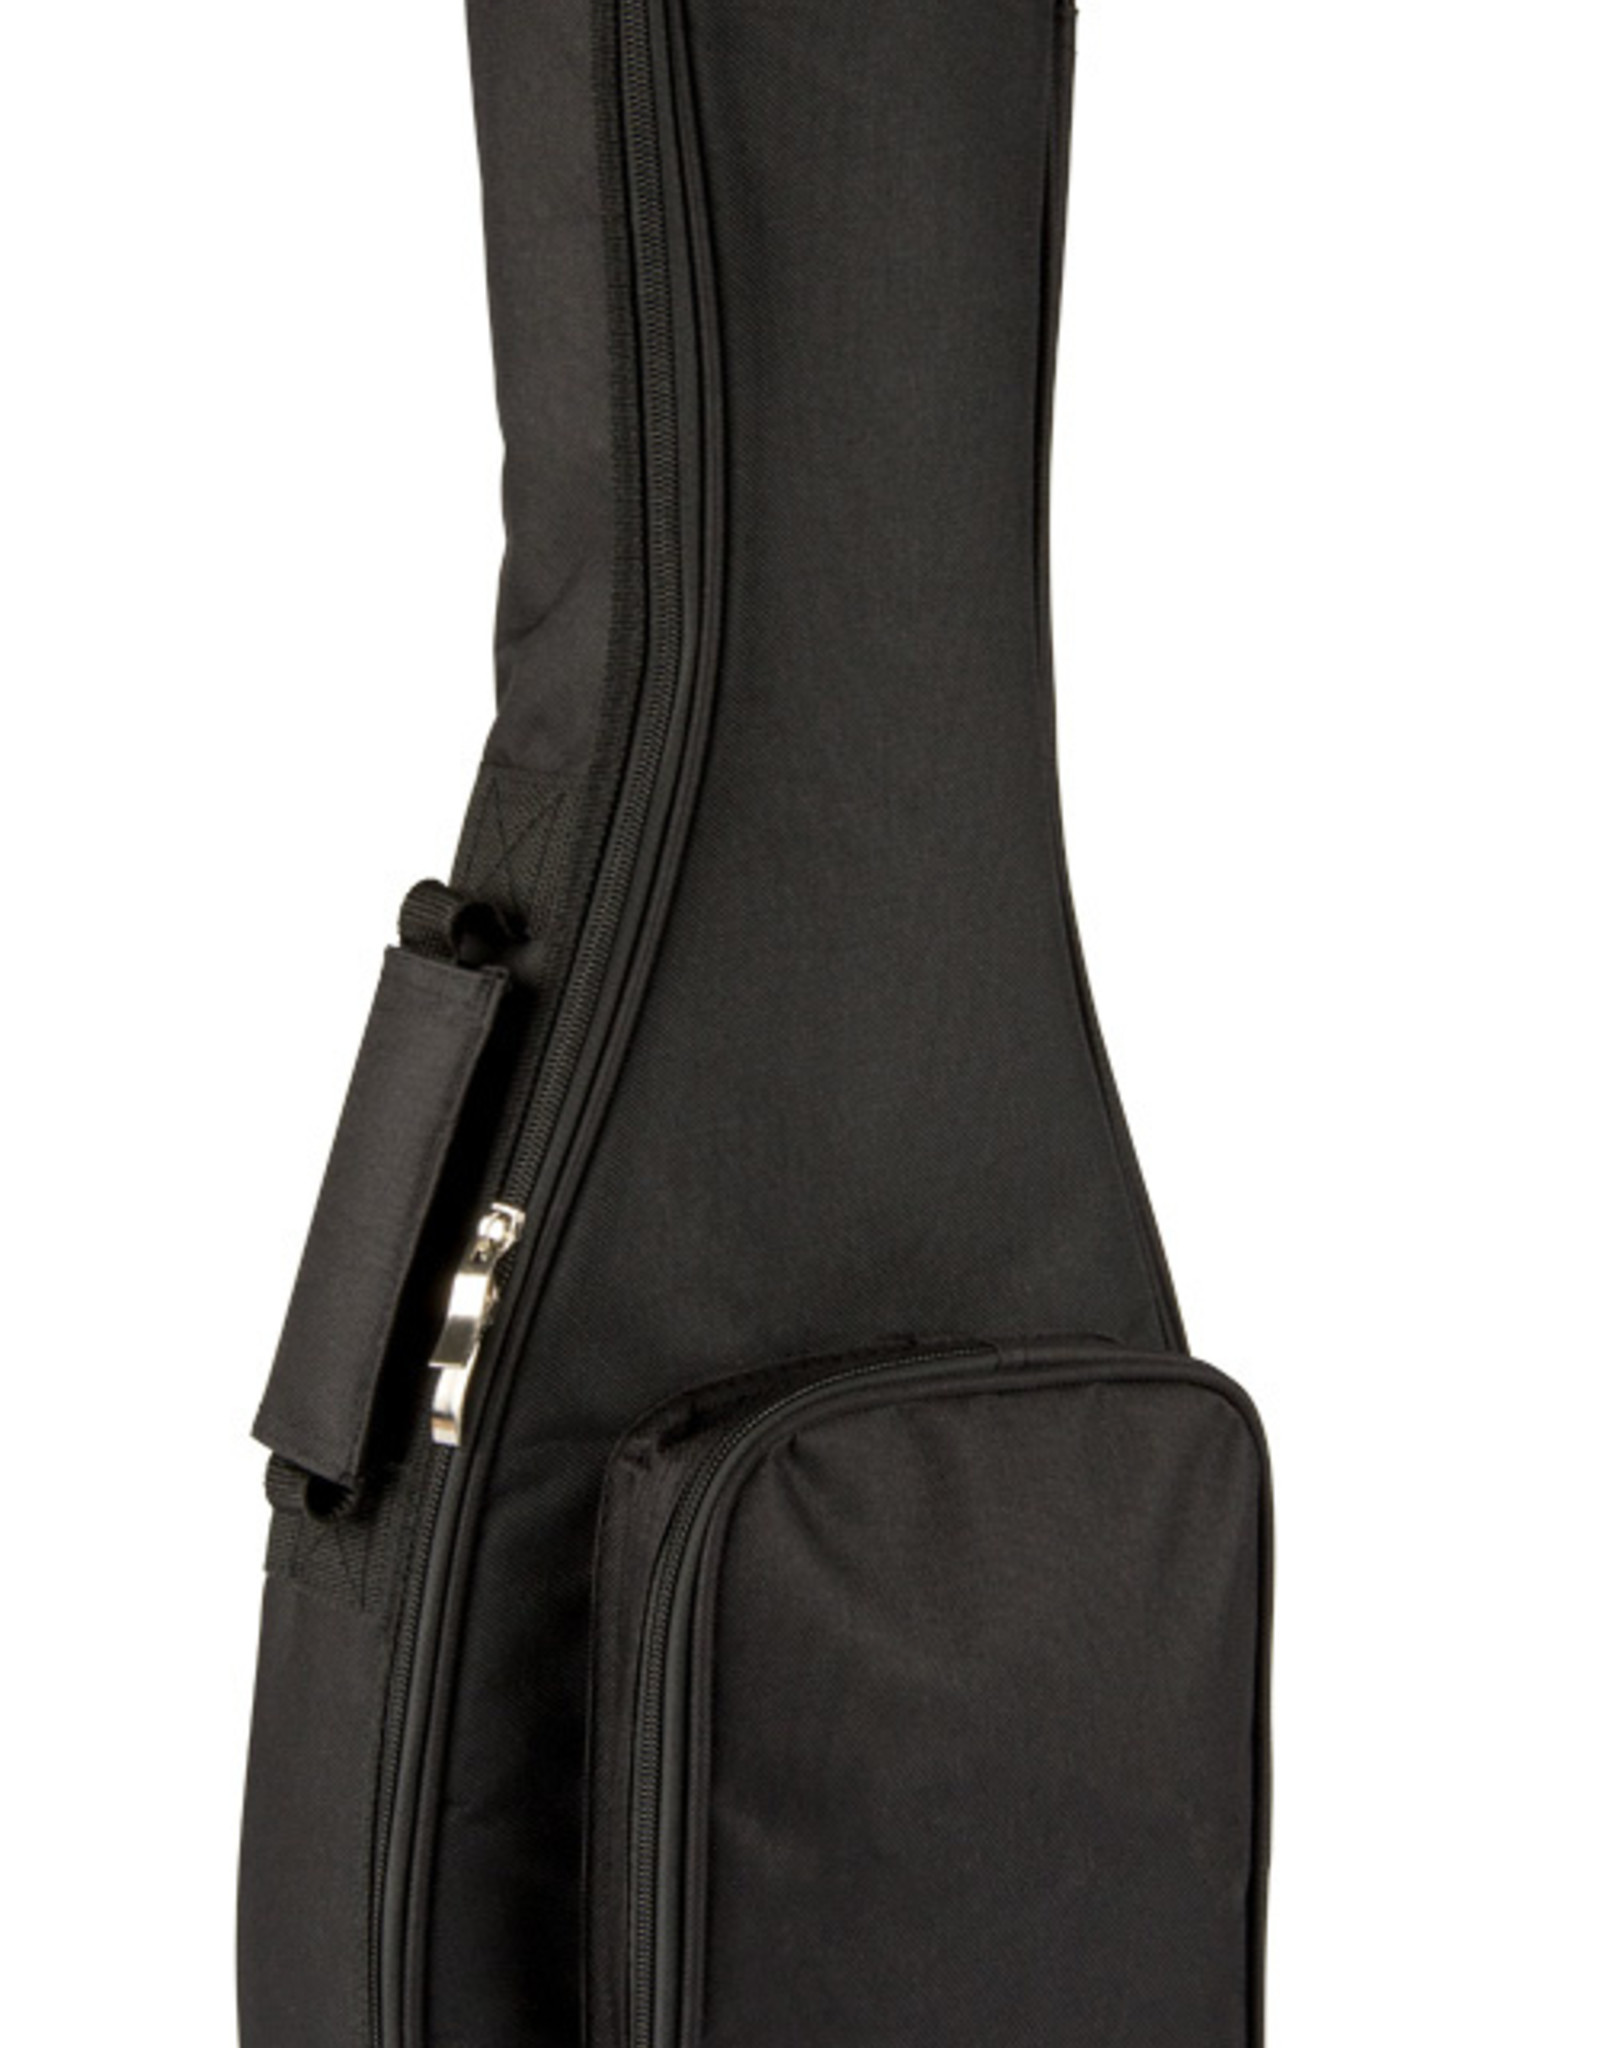 LANIKAI Lanikai Black Nylon Thickly Padded Concert Ukulele Bag